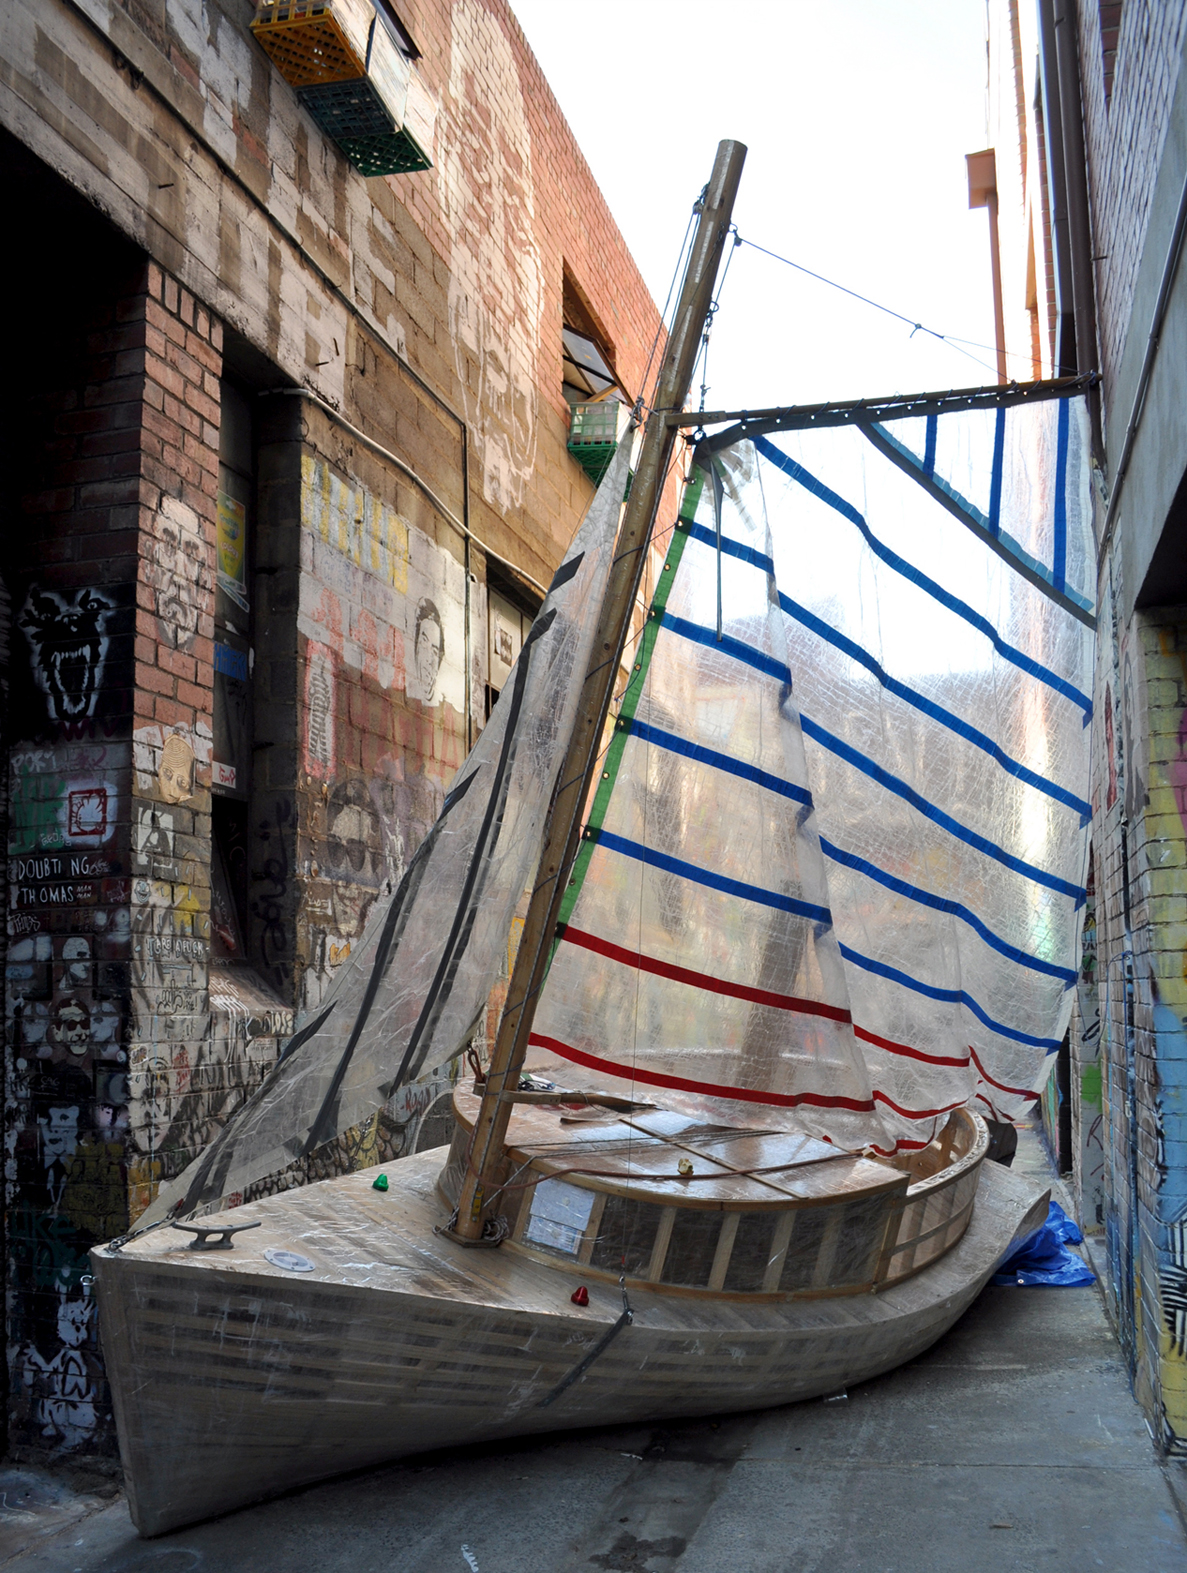 2/3/10-One of the best things to do in Melbourne is walk through its alley ways. You never know what you'll find, like this sailboat made of wood and tape, which I found in an alley way off Victoria Street. Photo by Bobbi Lee Hitchon